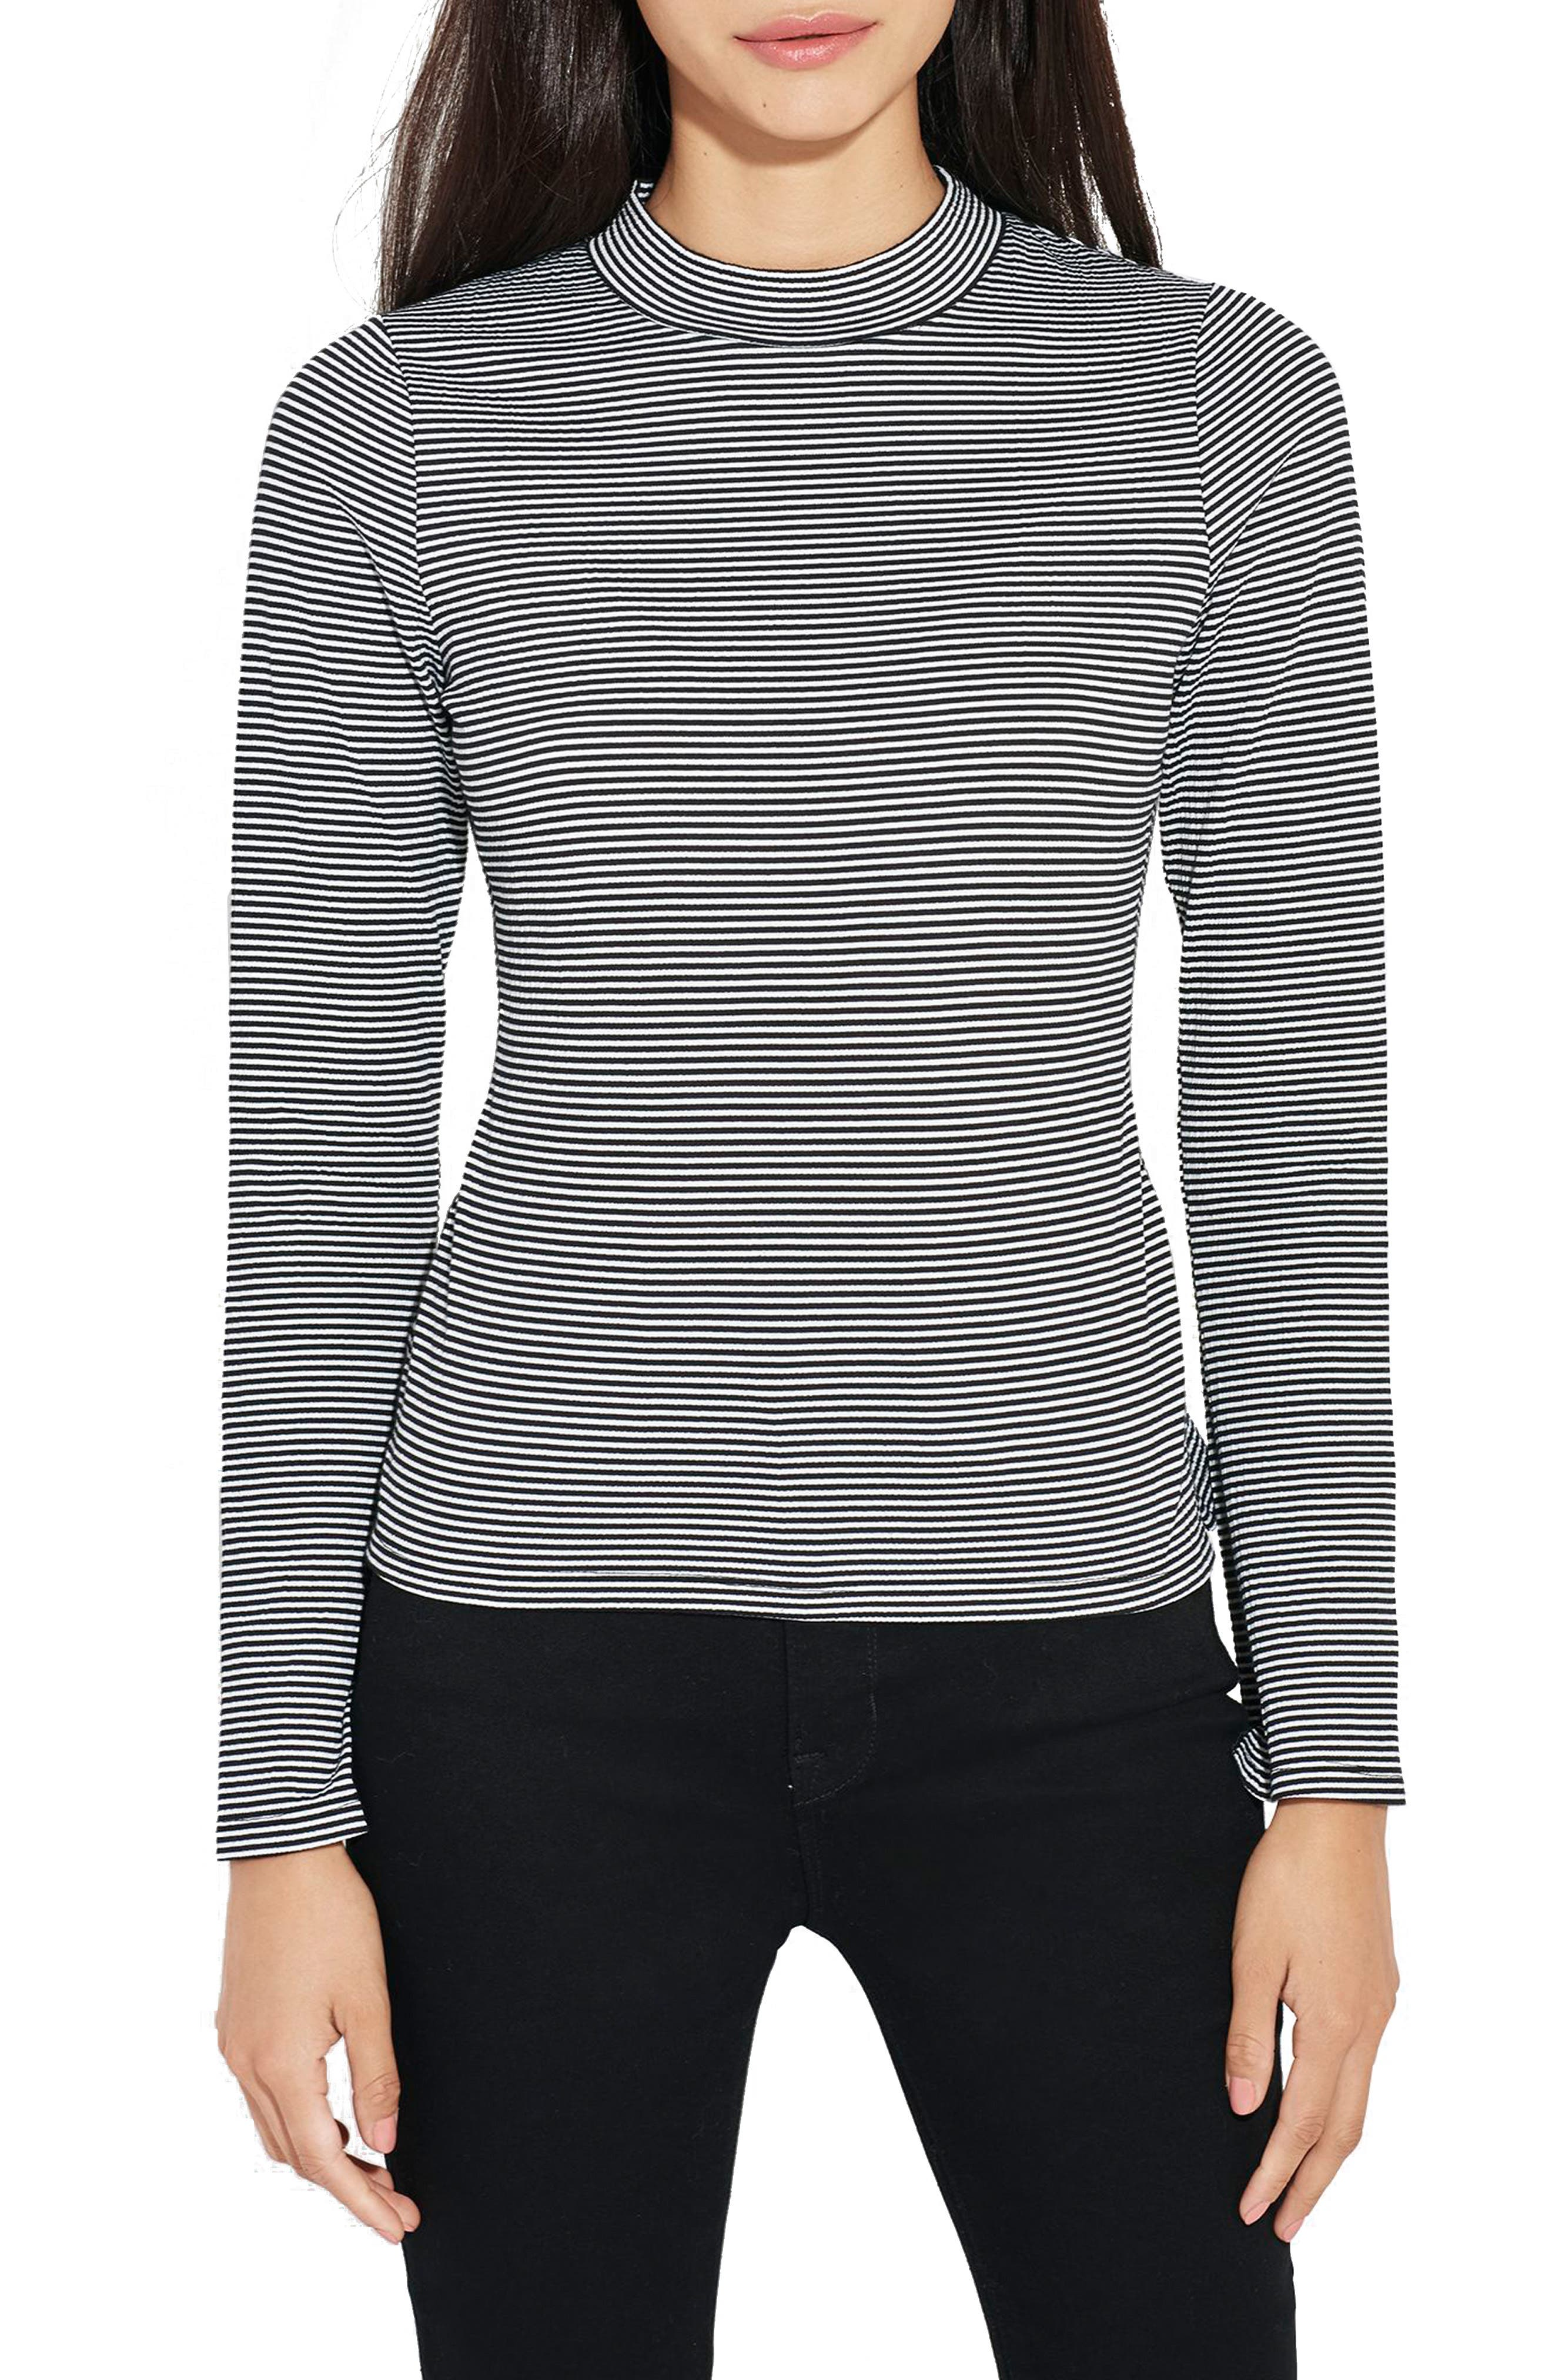 AYR The Slope Stripe Top